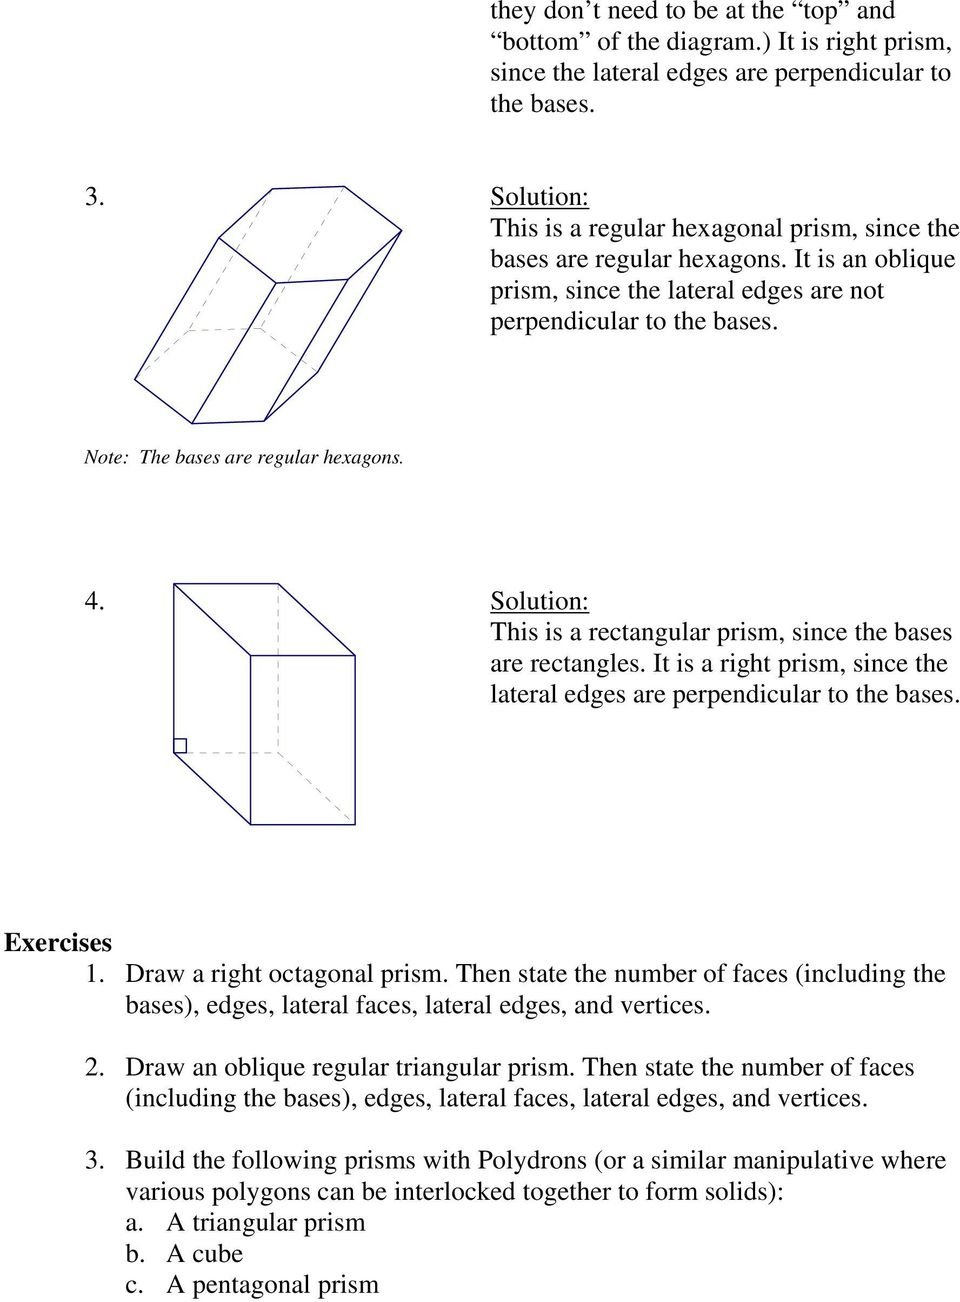 Note: The bases are regular hexagons. 4. Solution: This is a rectangular prism, since the bases are rectangles. It is a right prism, since the lateral edges are perpendicular to the bases.